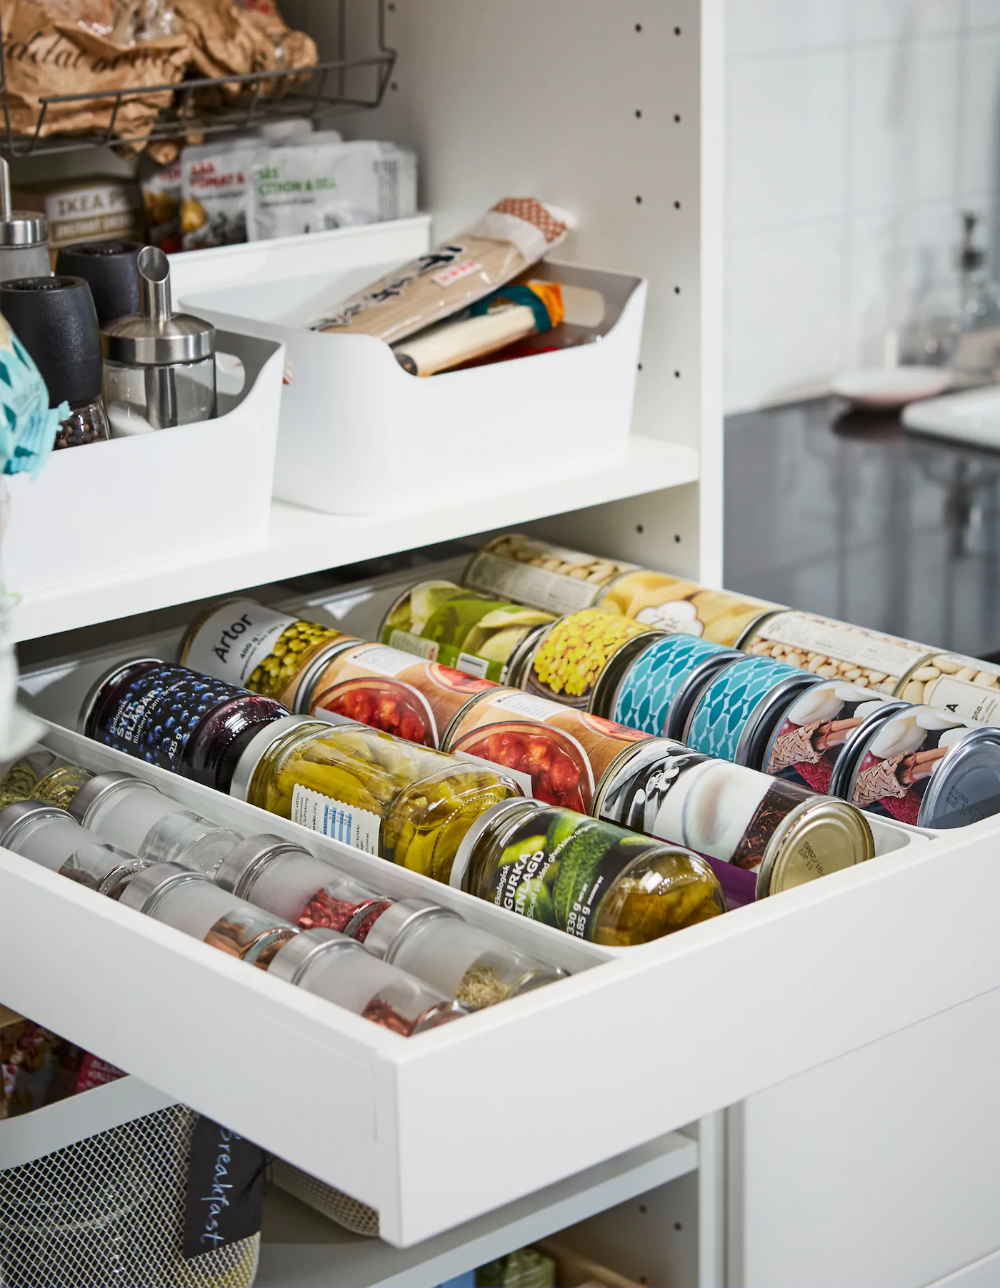 Pantry organization ideas for your …